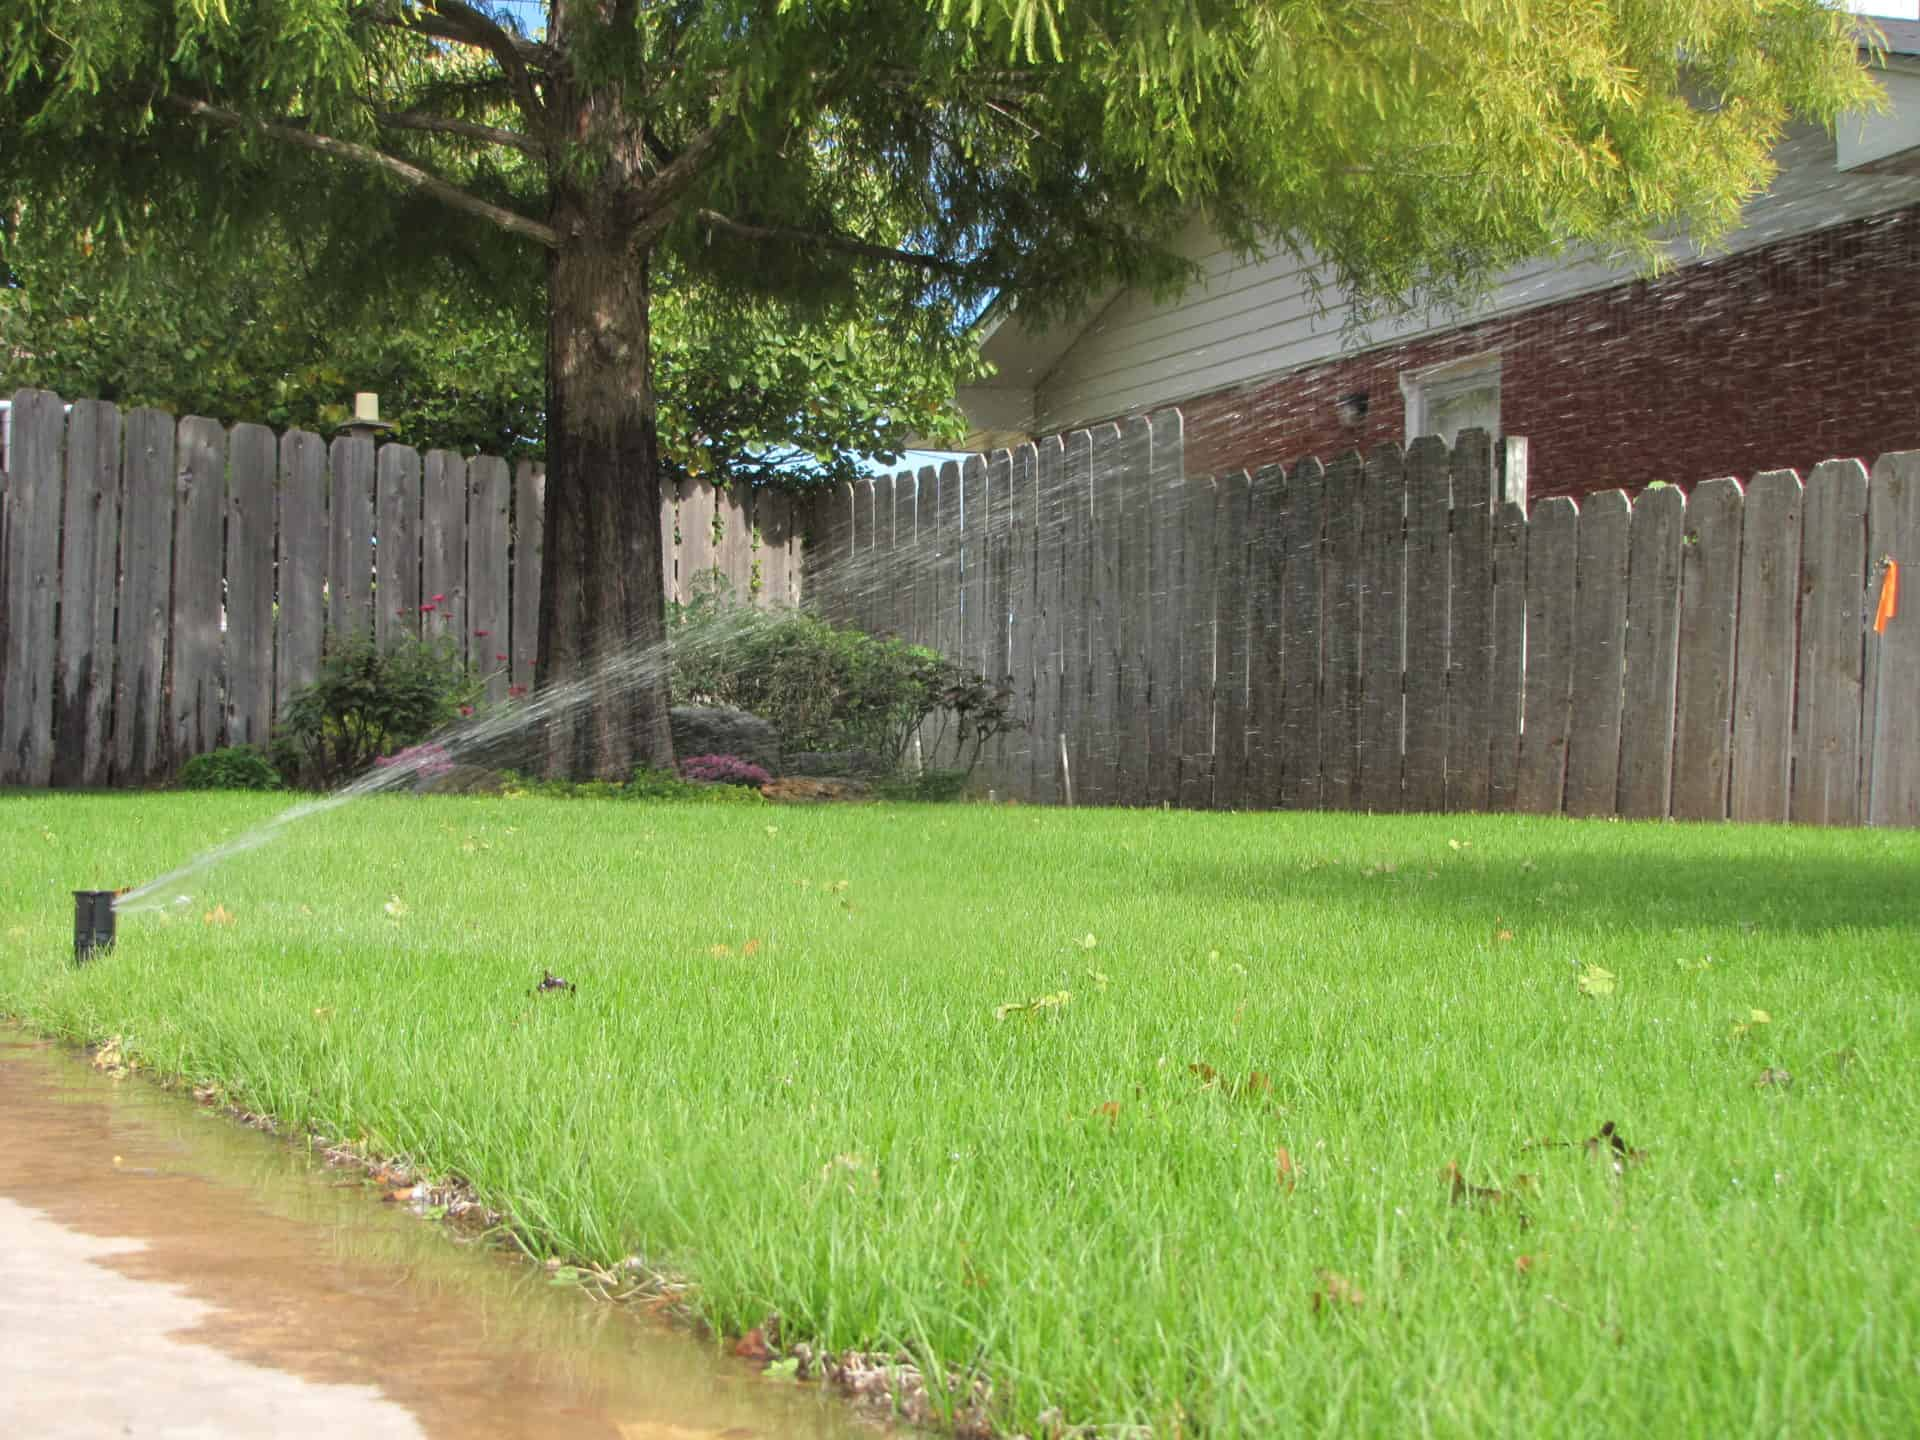 Grass being watered by in-ground sprinkler